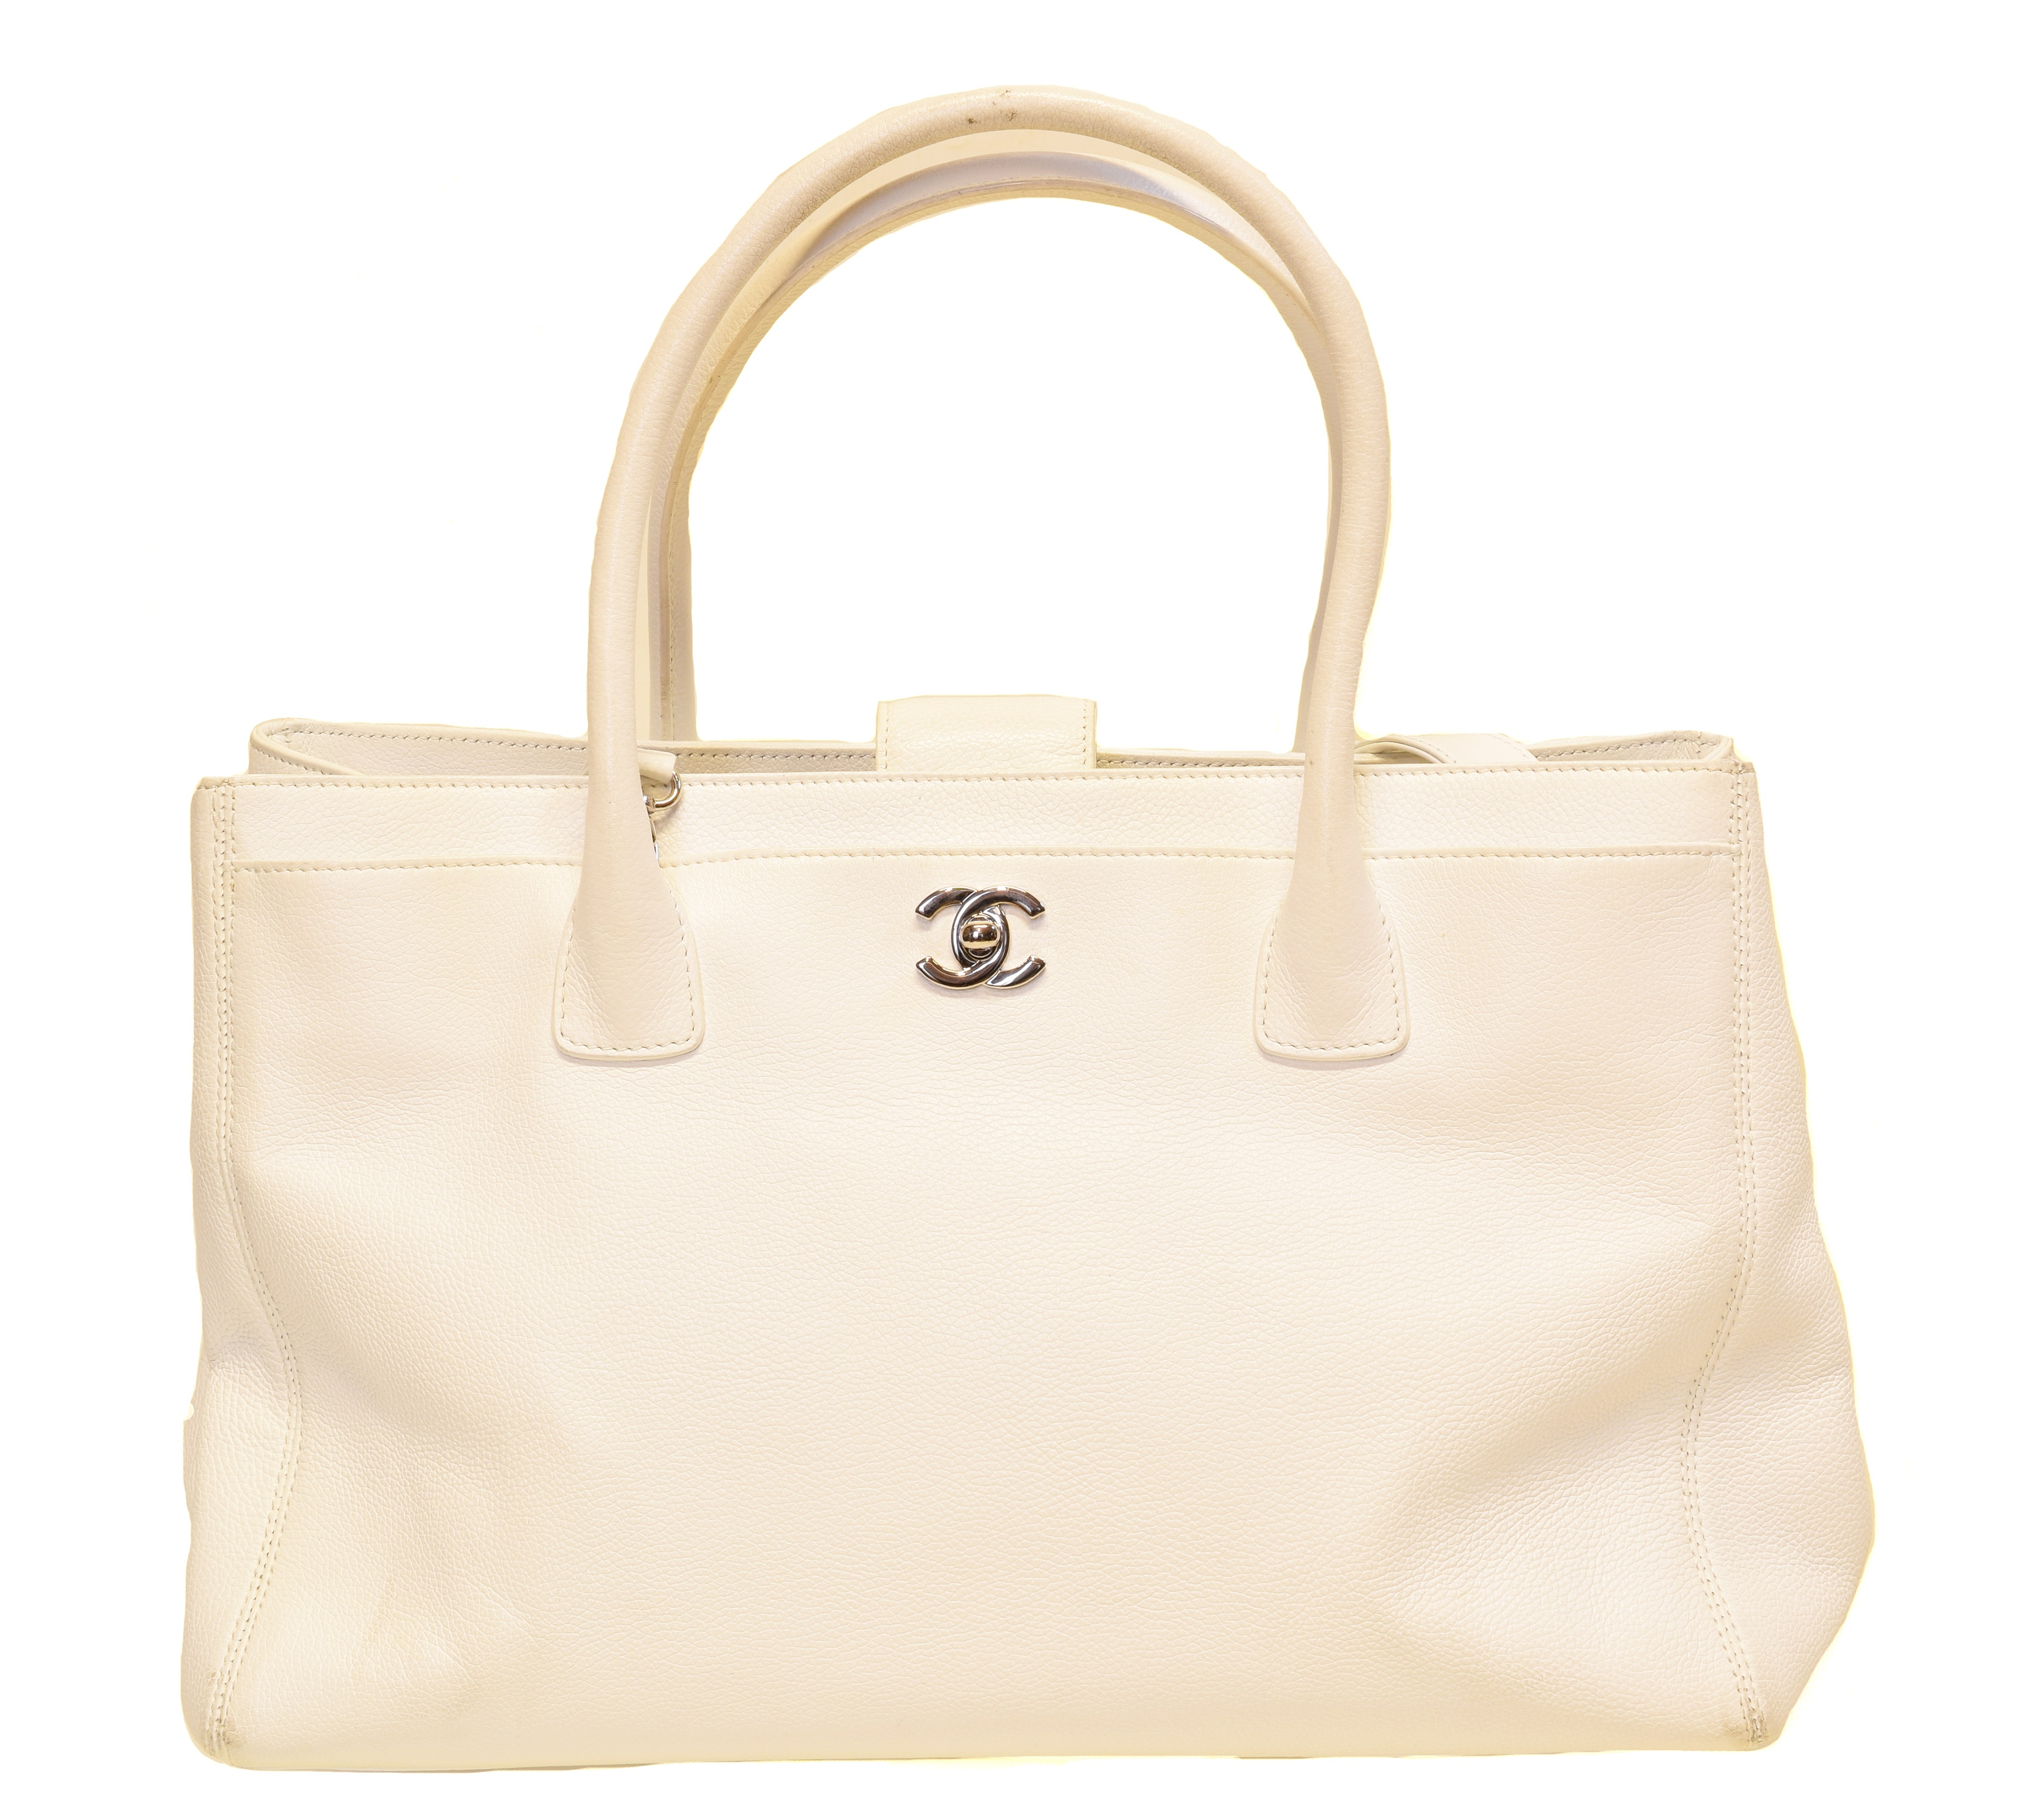 A Chanel Cerf Tote Shoulder Bag, circa 2008-9, the white grained calf leather exterior with white leather straps and silver-tone hardware, serial no. 12381545. With shoulder strap, maker's authenticty card and pouch.  (Qty: 1)  35.5x23.5x12cm  Sold for £1,269